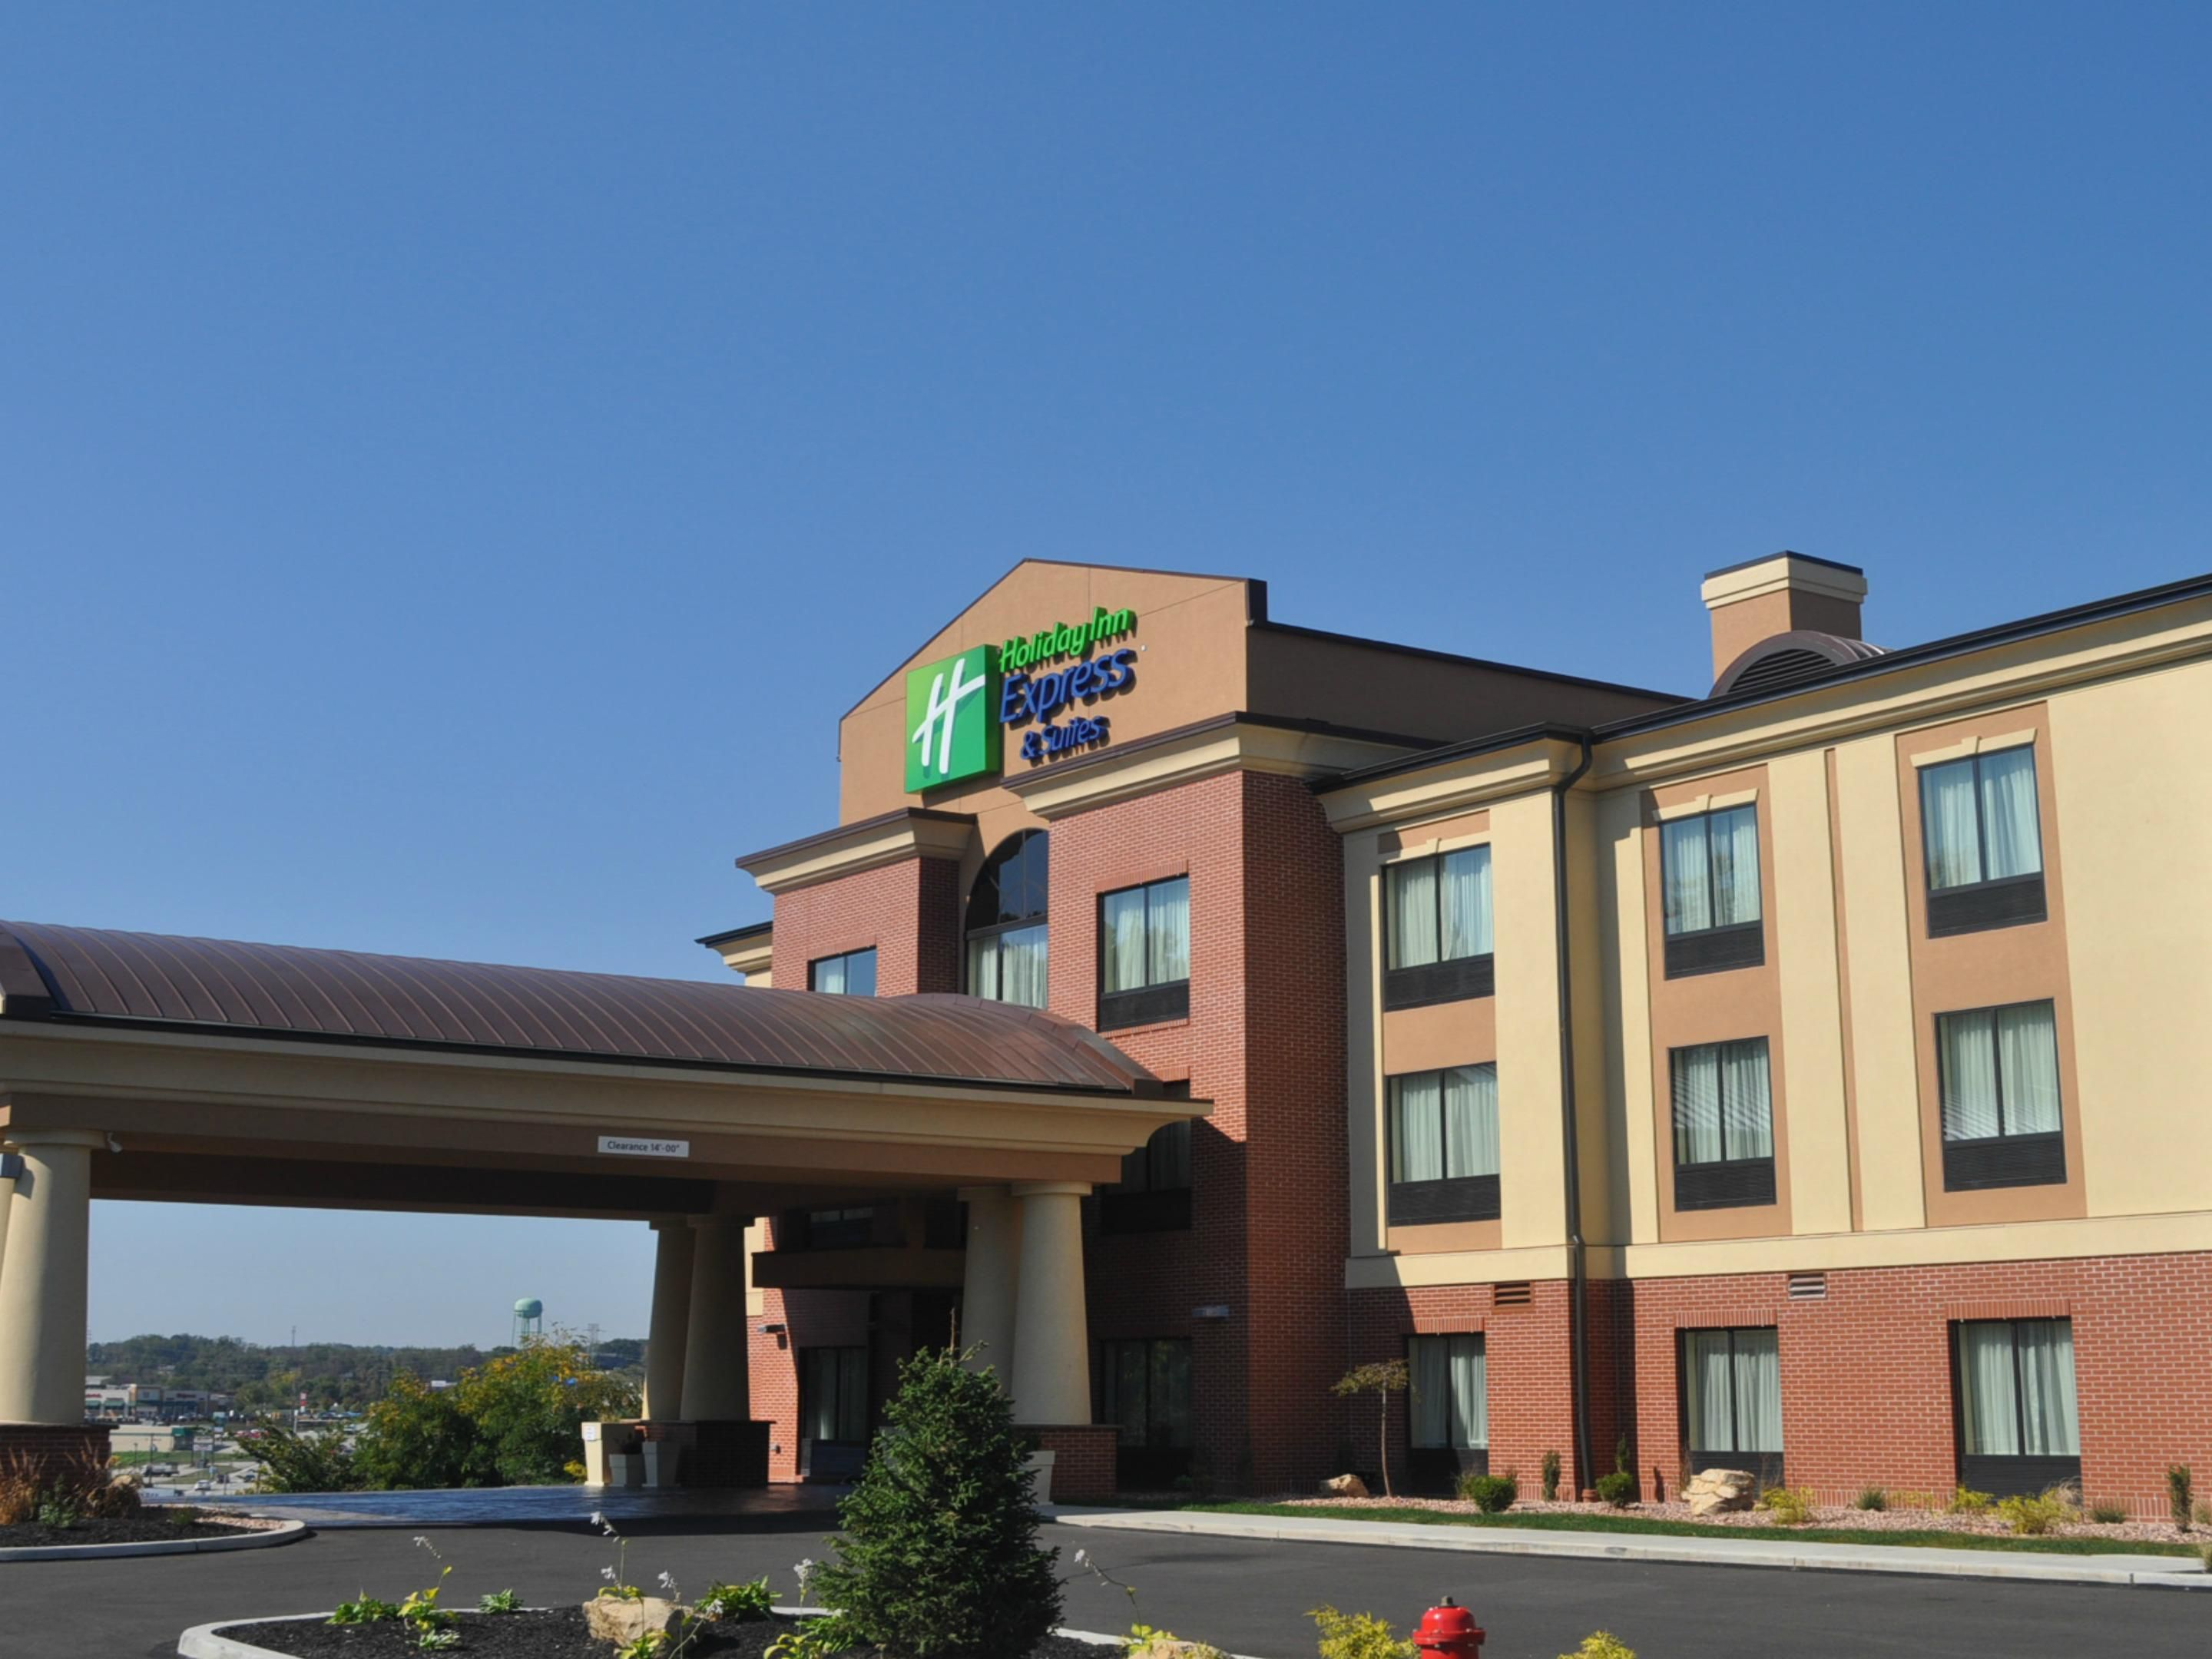 Welcome to the Holiday Inn Express & Suites Greensburg, PA!